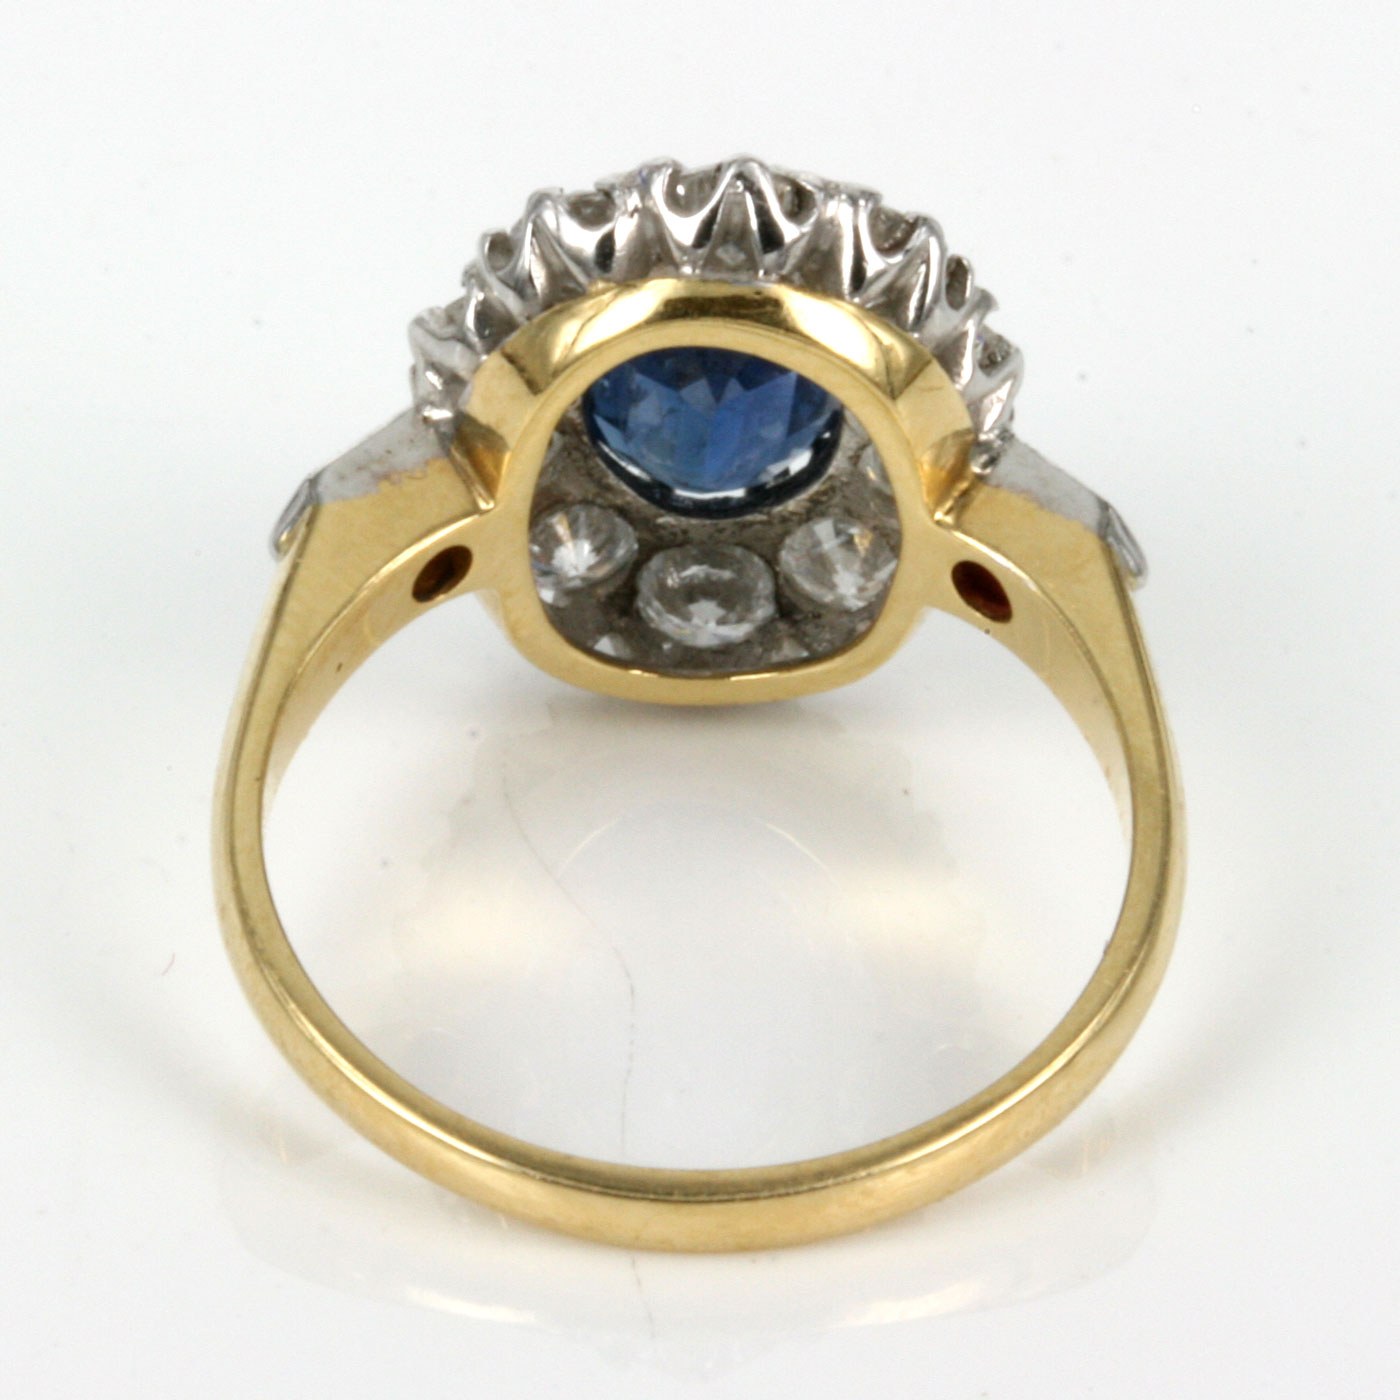 Buy Antique untreated sapphire & diamond engagement ring Sold Items Sold